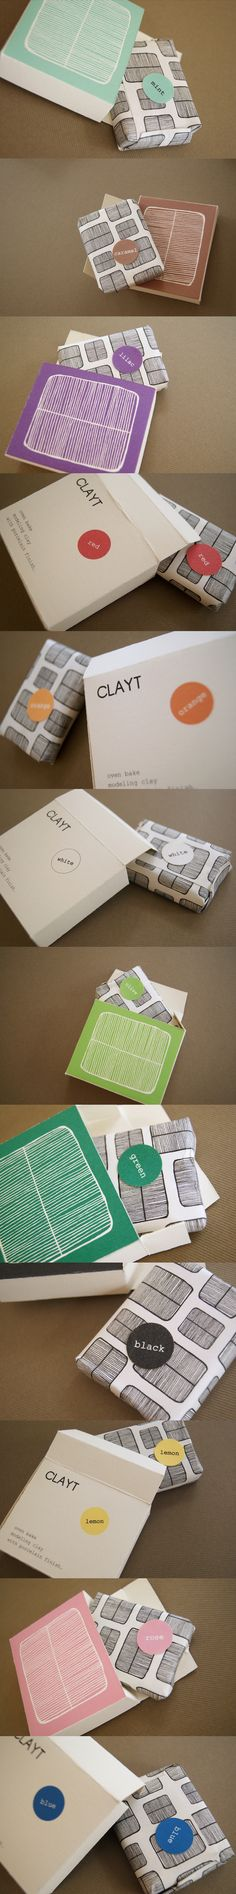 Clay Packaging by Anna Trympali, via Behance. take a simple product and put it in an awesome package PD